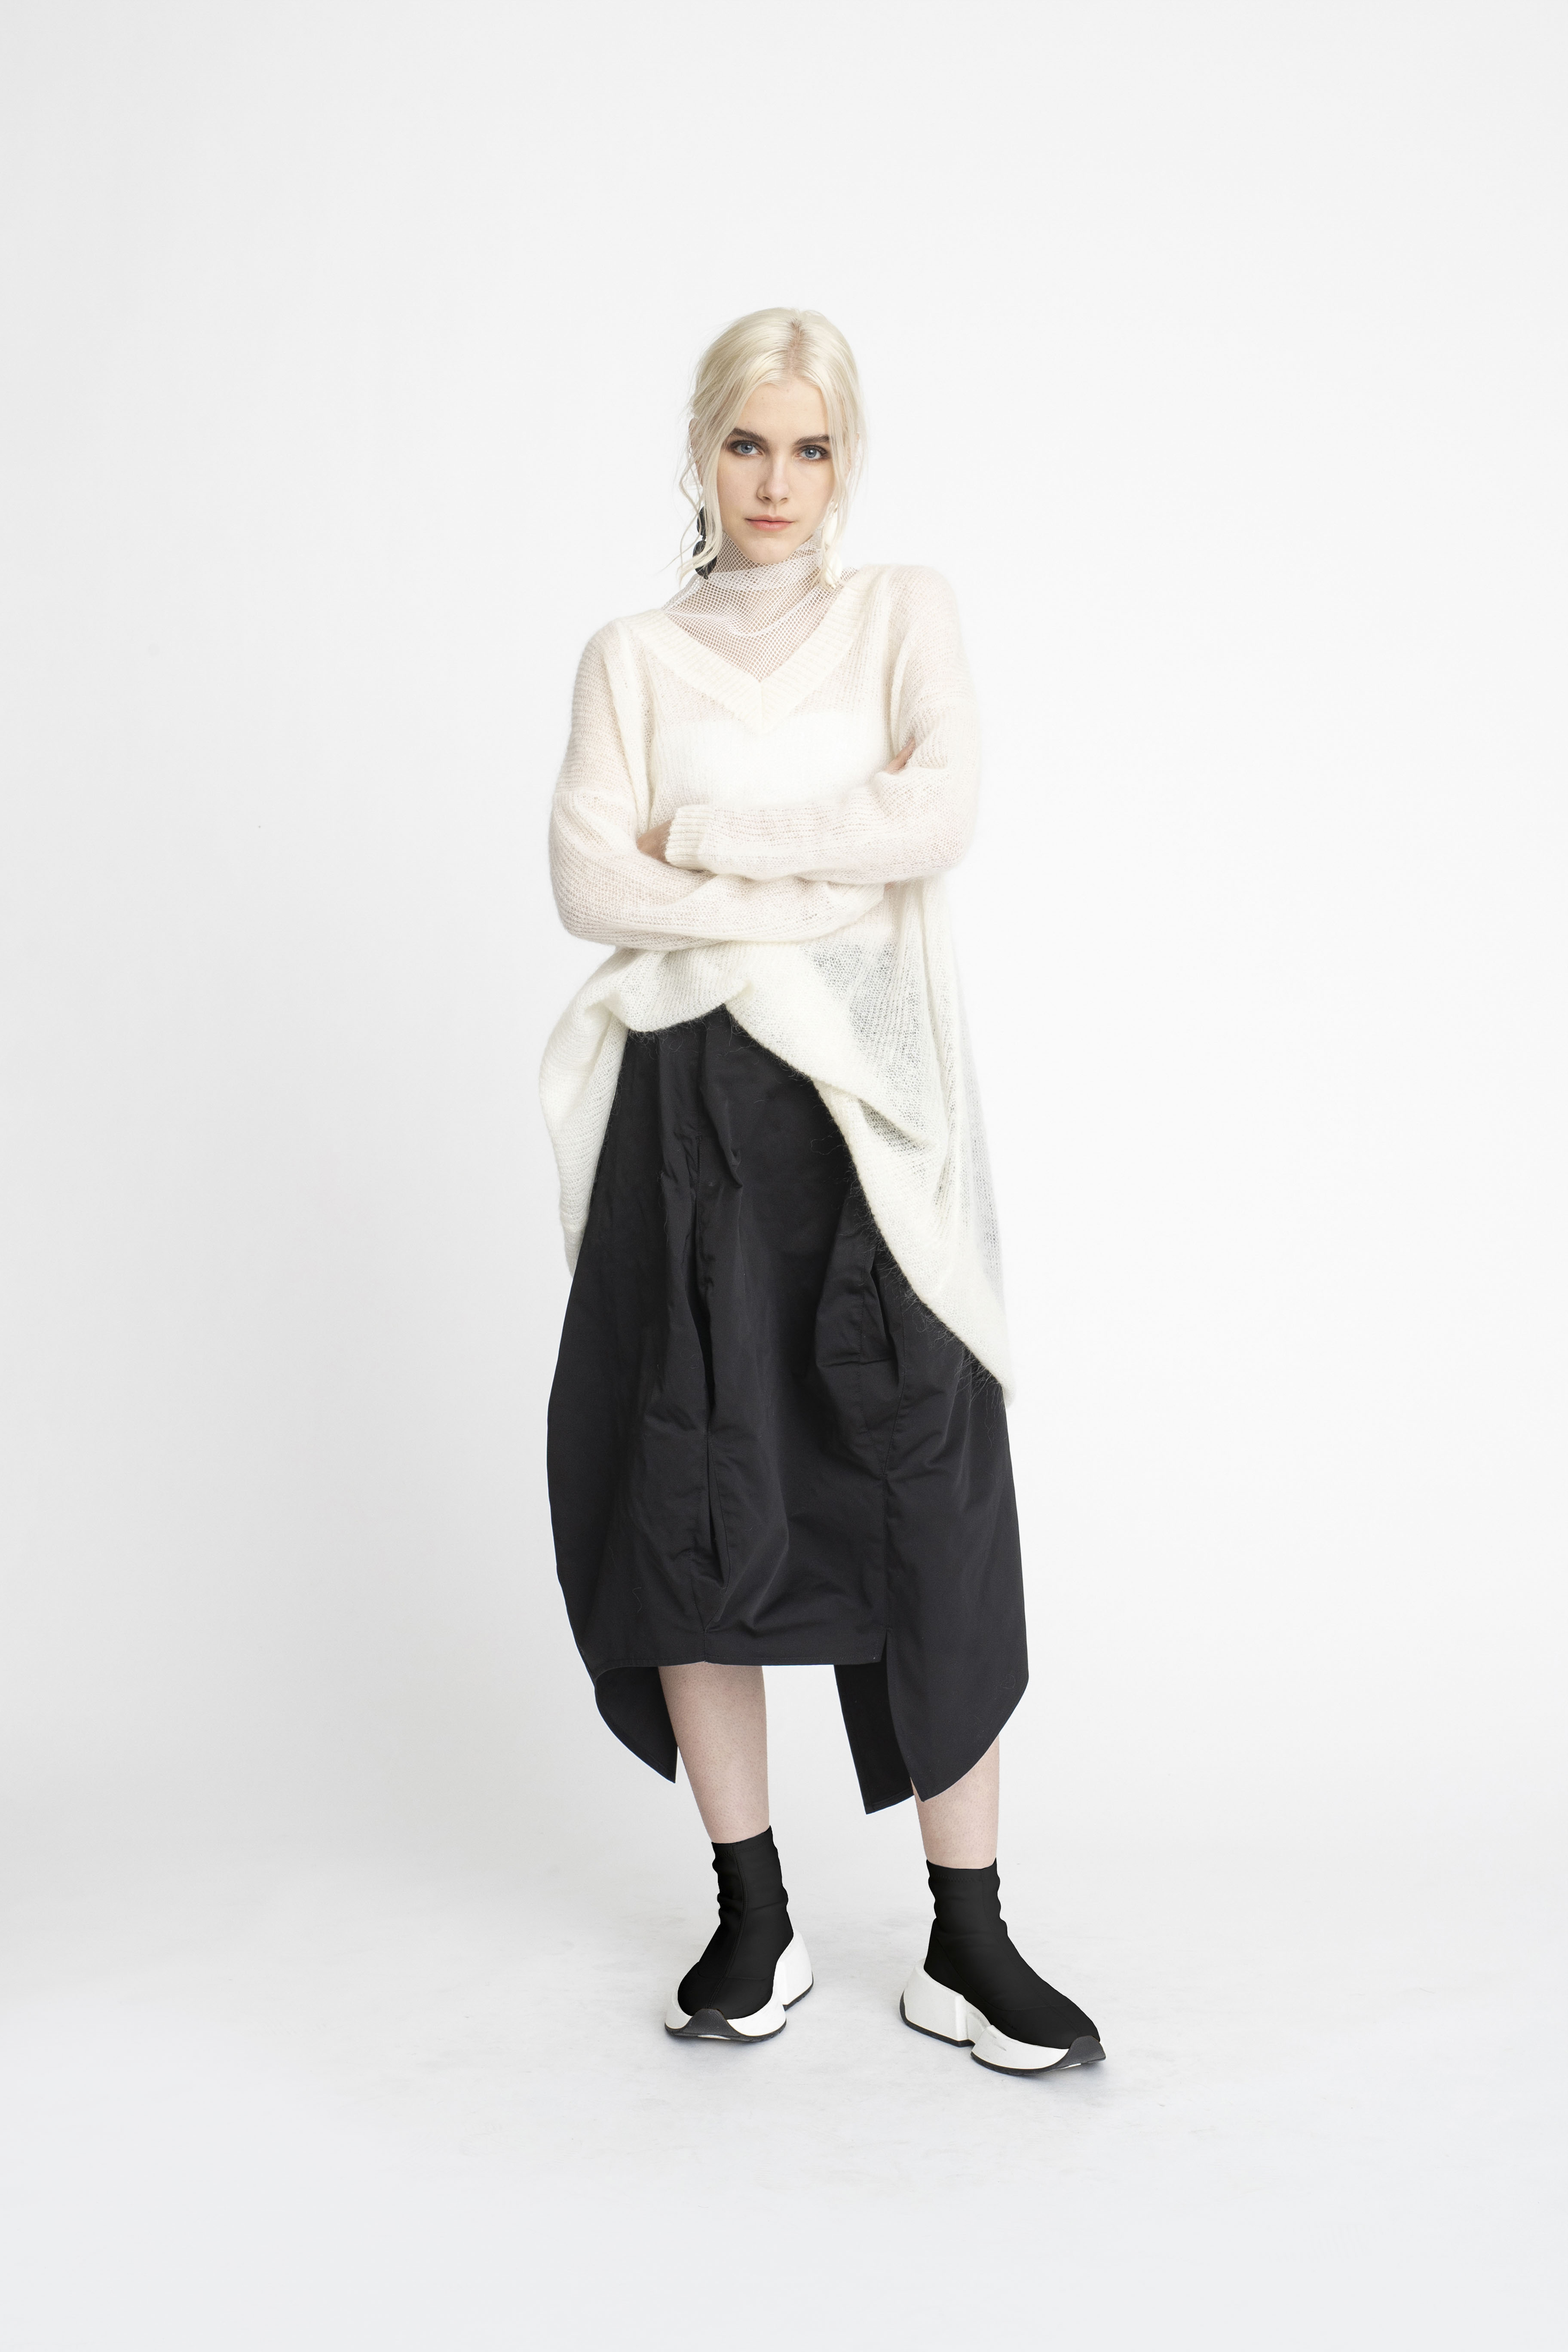 Undone-Tunic_Atmosperic-Sweater_Scope-Skirt_TaylorBoutique_AW19_L70_1699 2